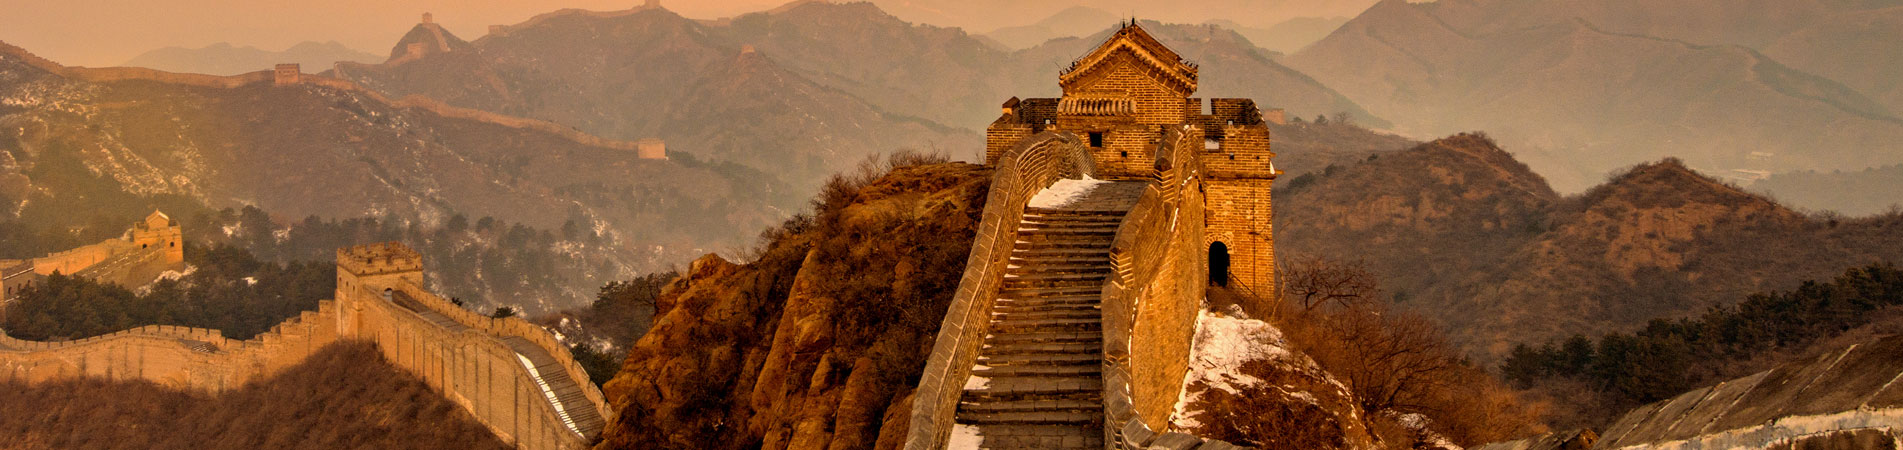 enjoy the sunset at the Great Wall